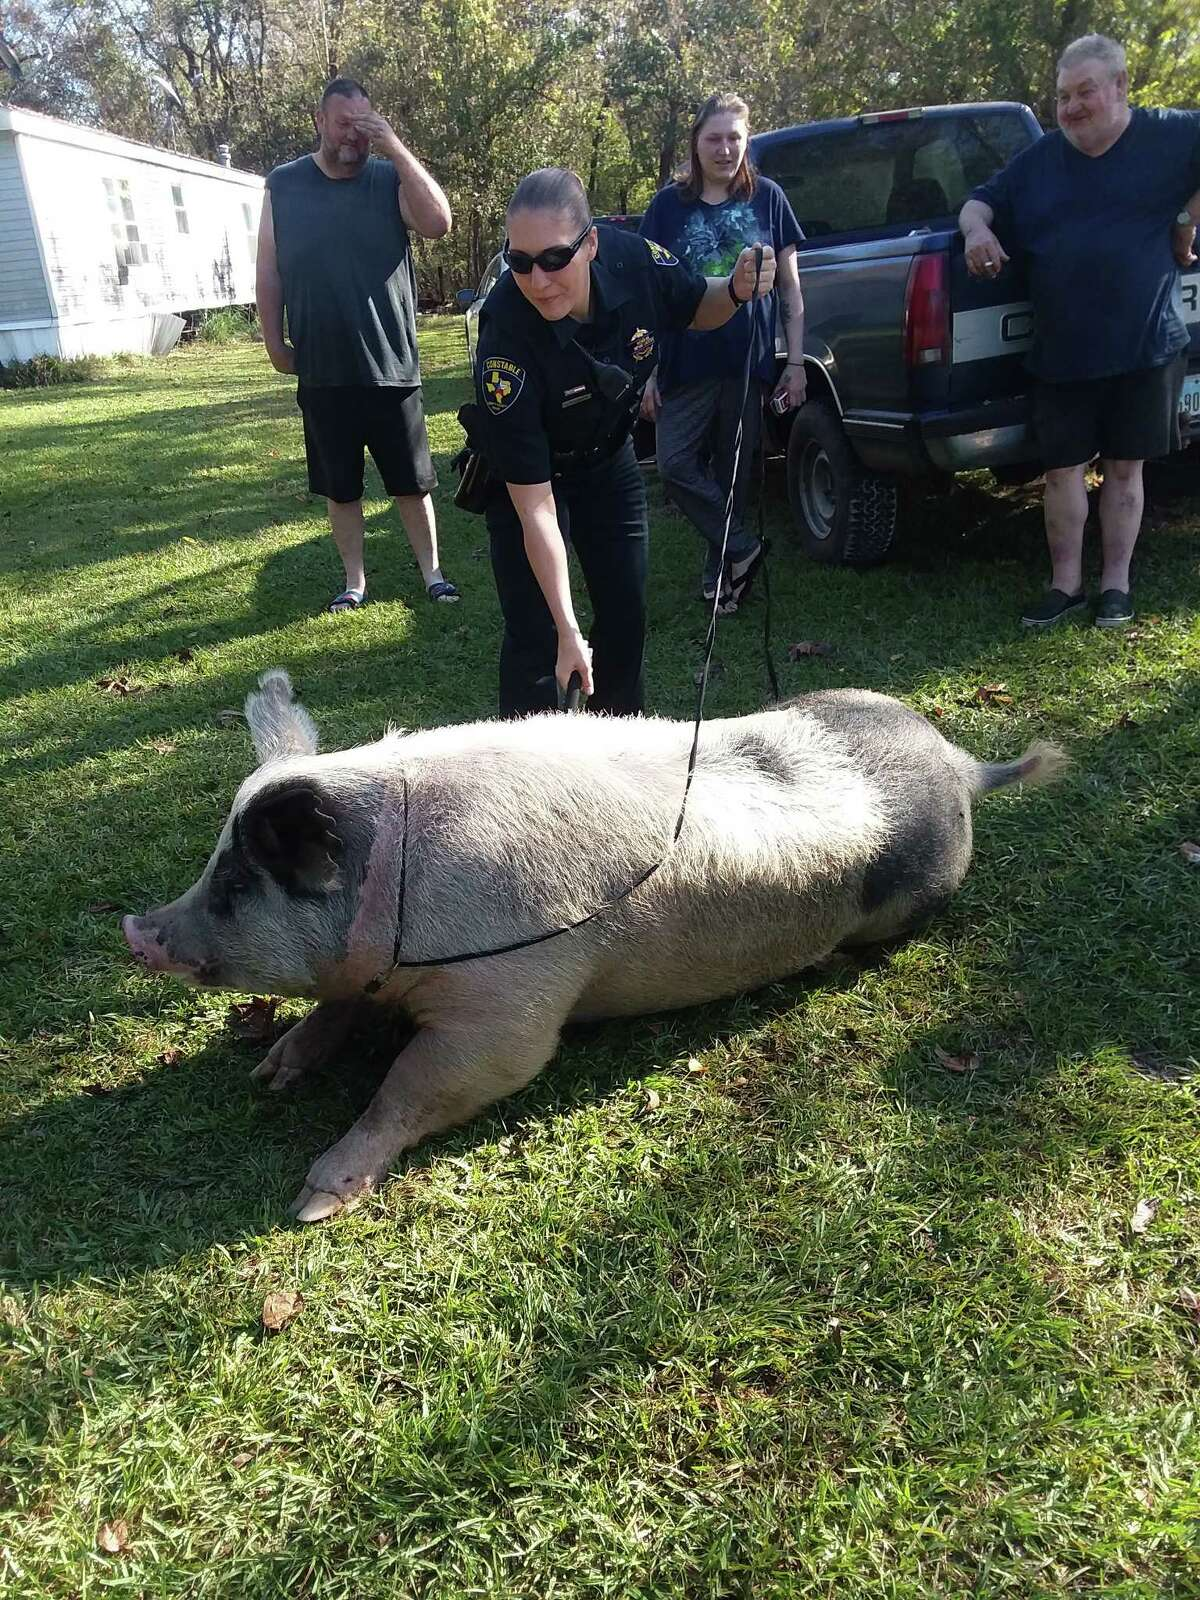 A pet pig escaped its pen on Nov. 30 and took a stroll through a Dayton neighborhood before being captured and returned home.